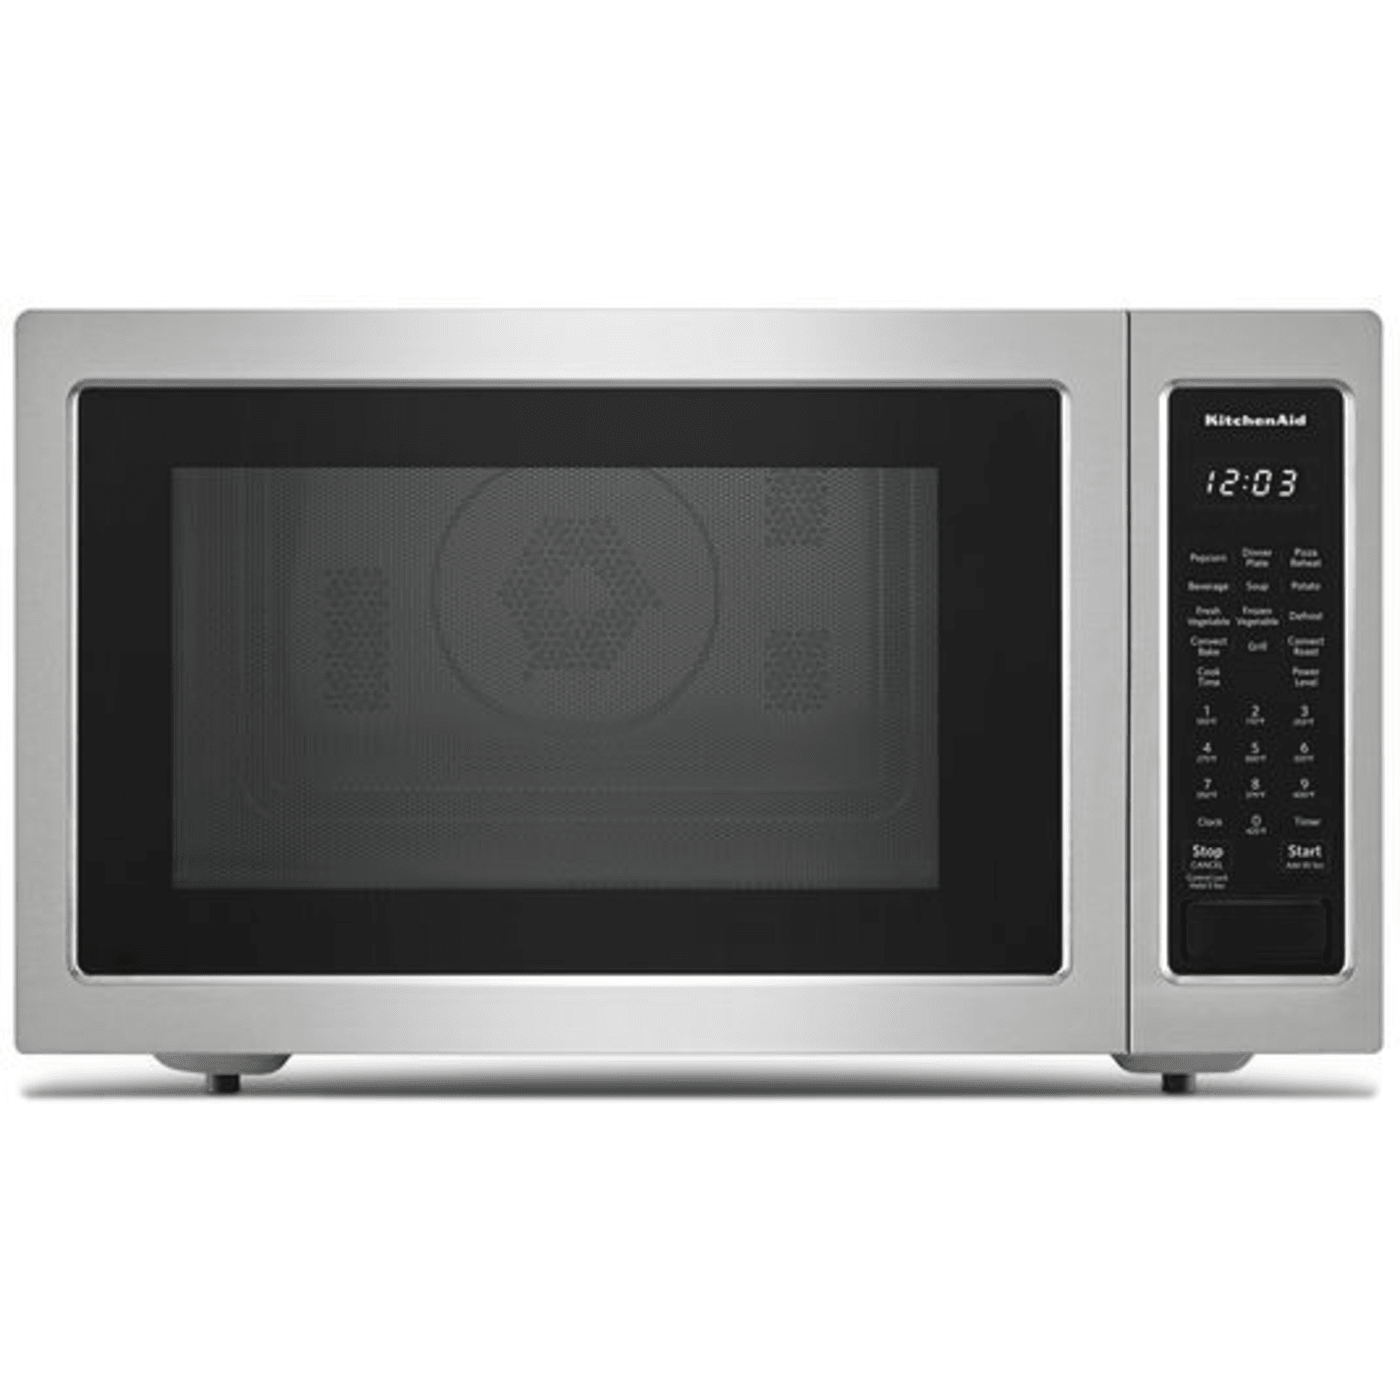 Kmcc5015gss By Kitchenaid Countertop Microwaves Goedekers Com